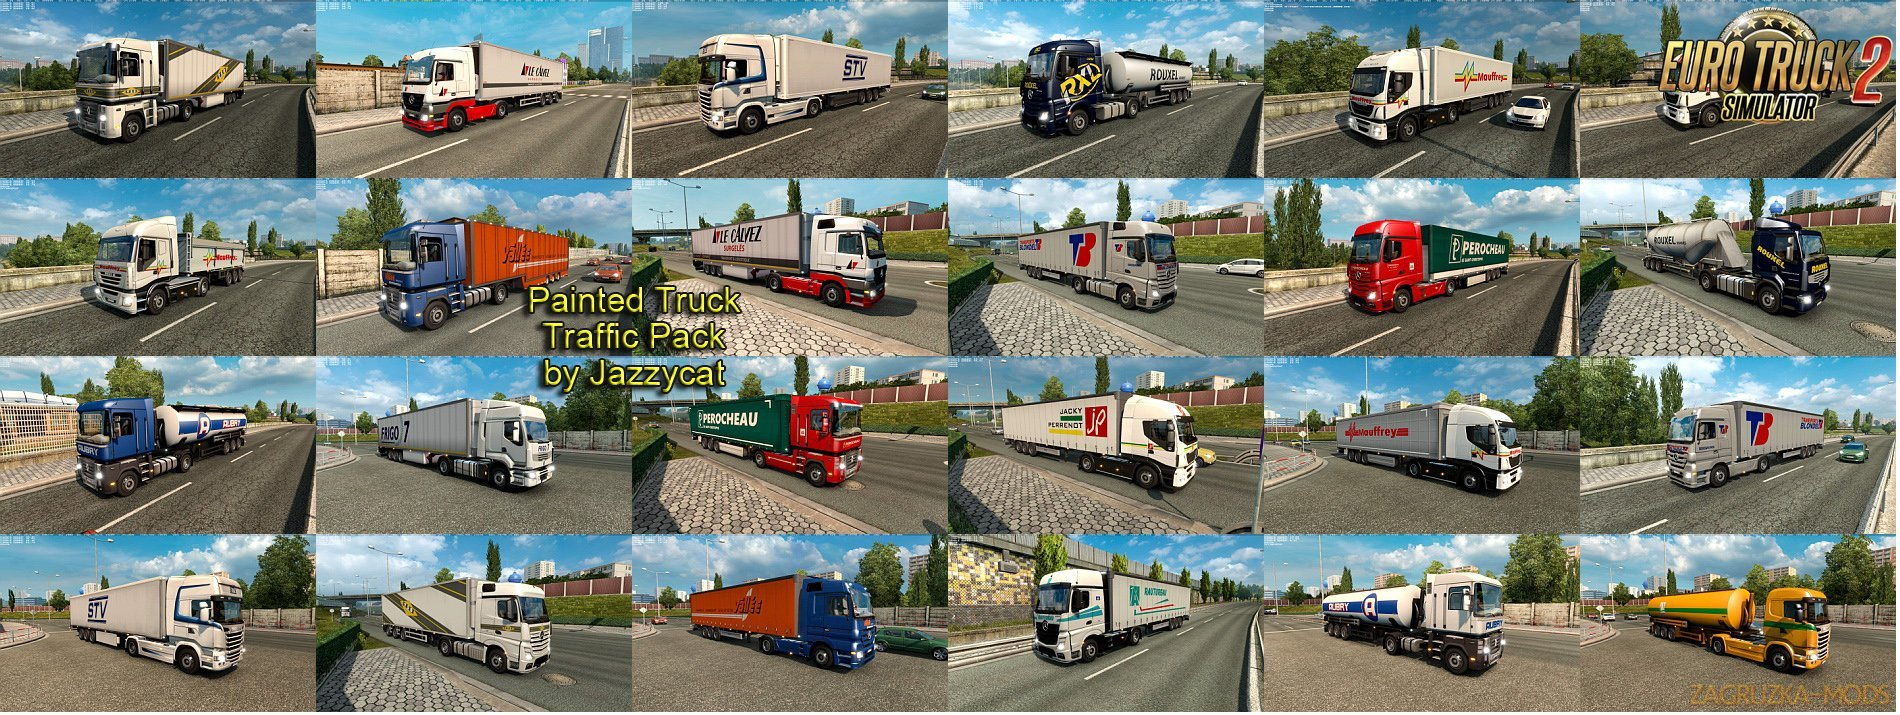 Painted Truck Traffic Pack v2.8 by Jazzycat [1.26.x]